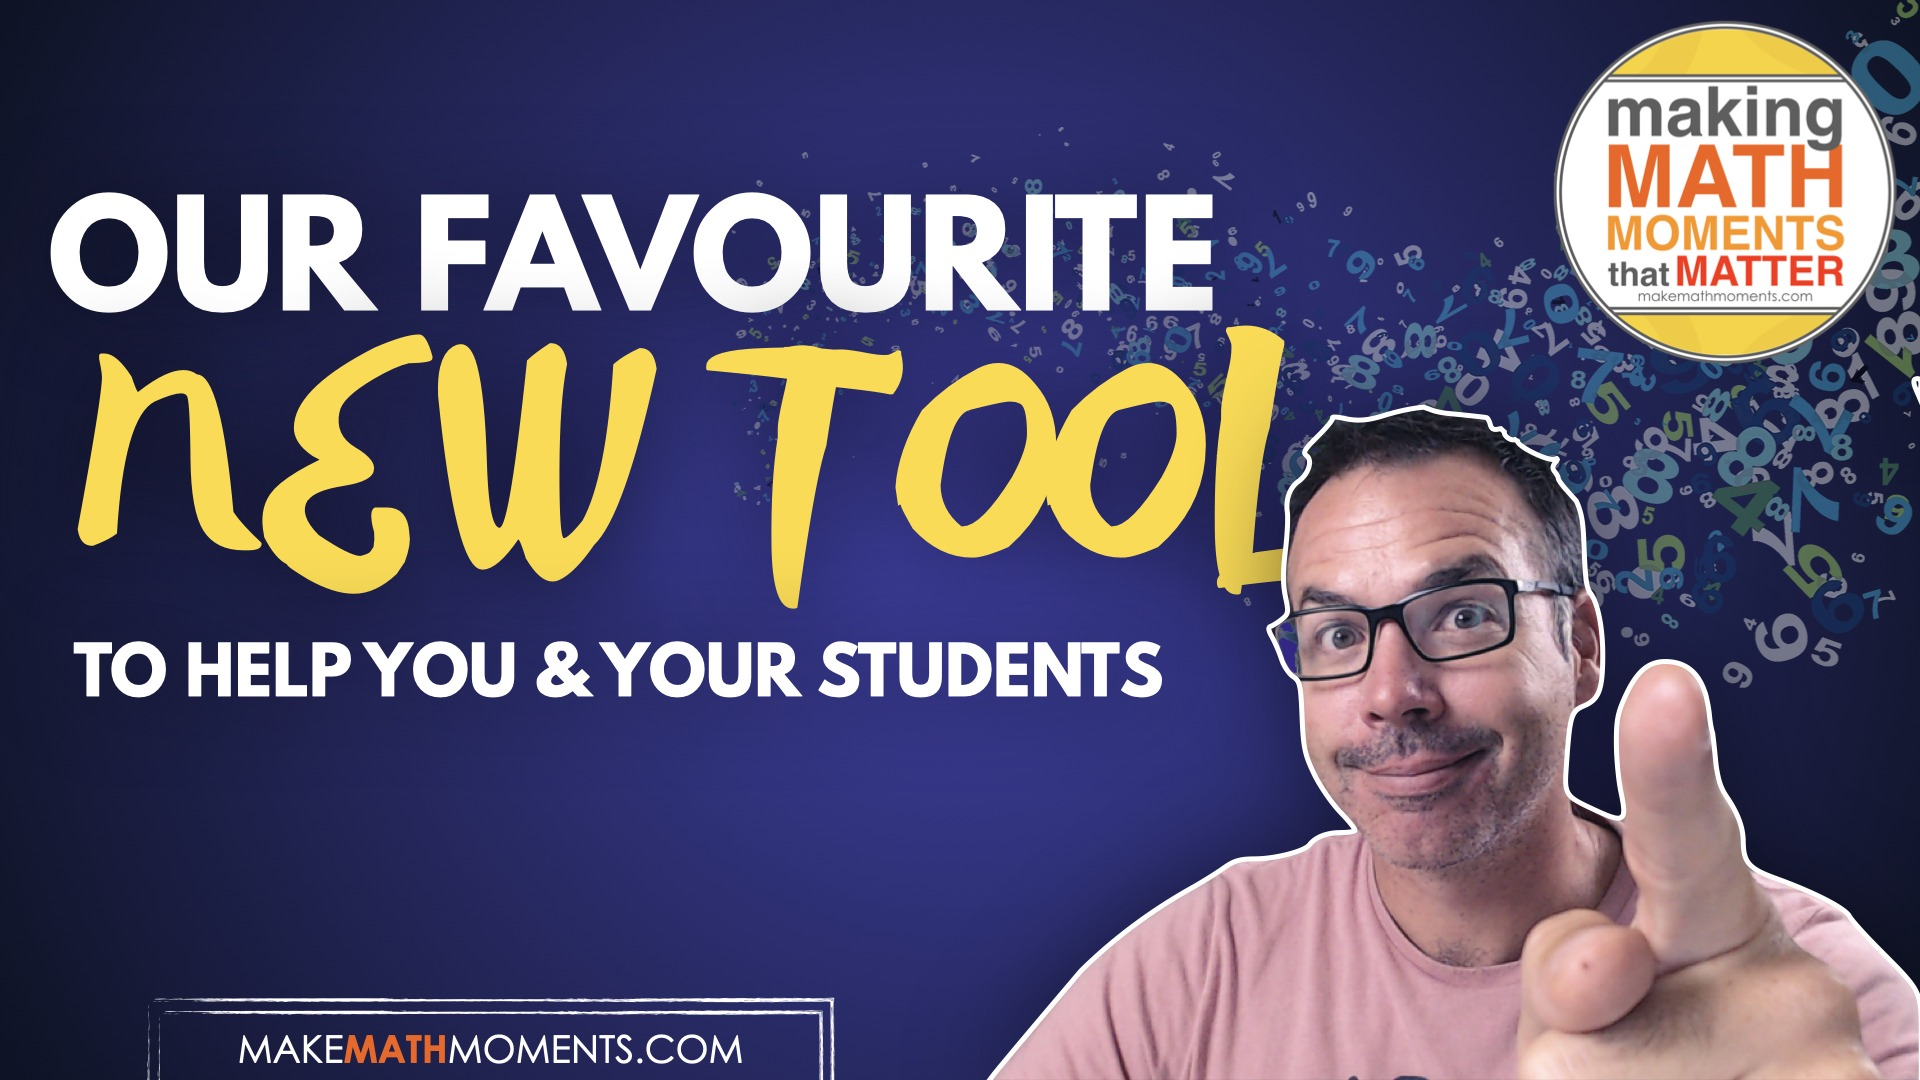 Our Favourite New Tool To Help You & Your Students